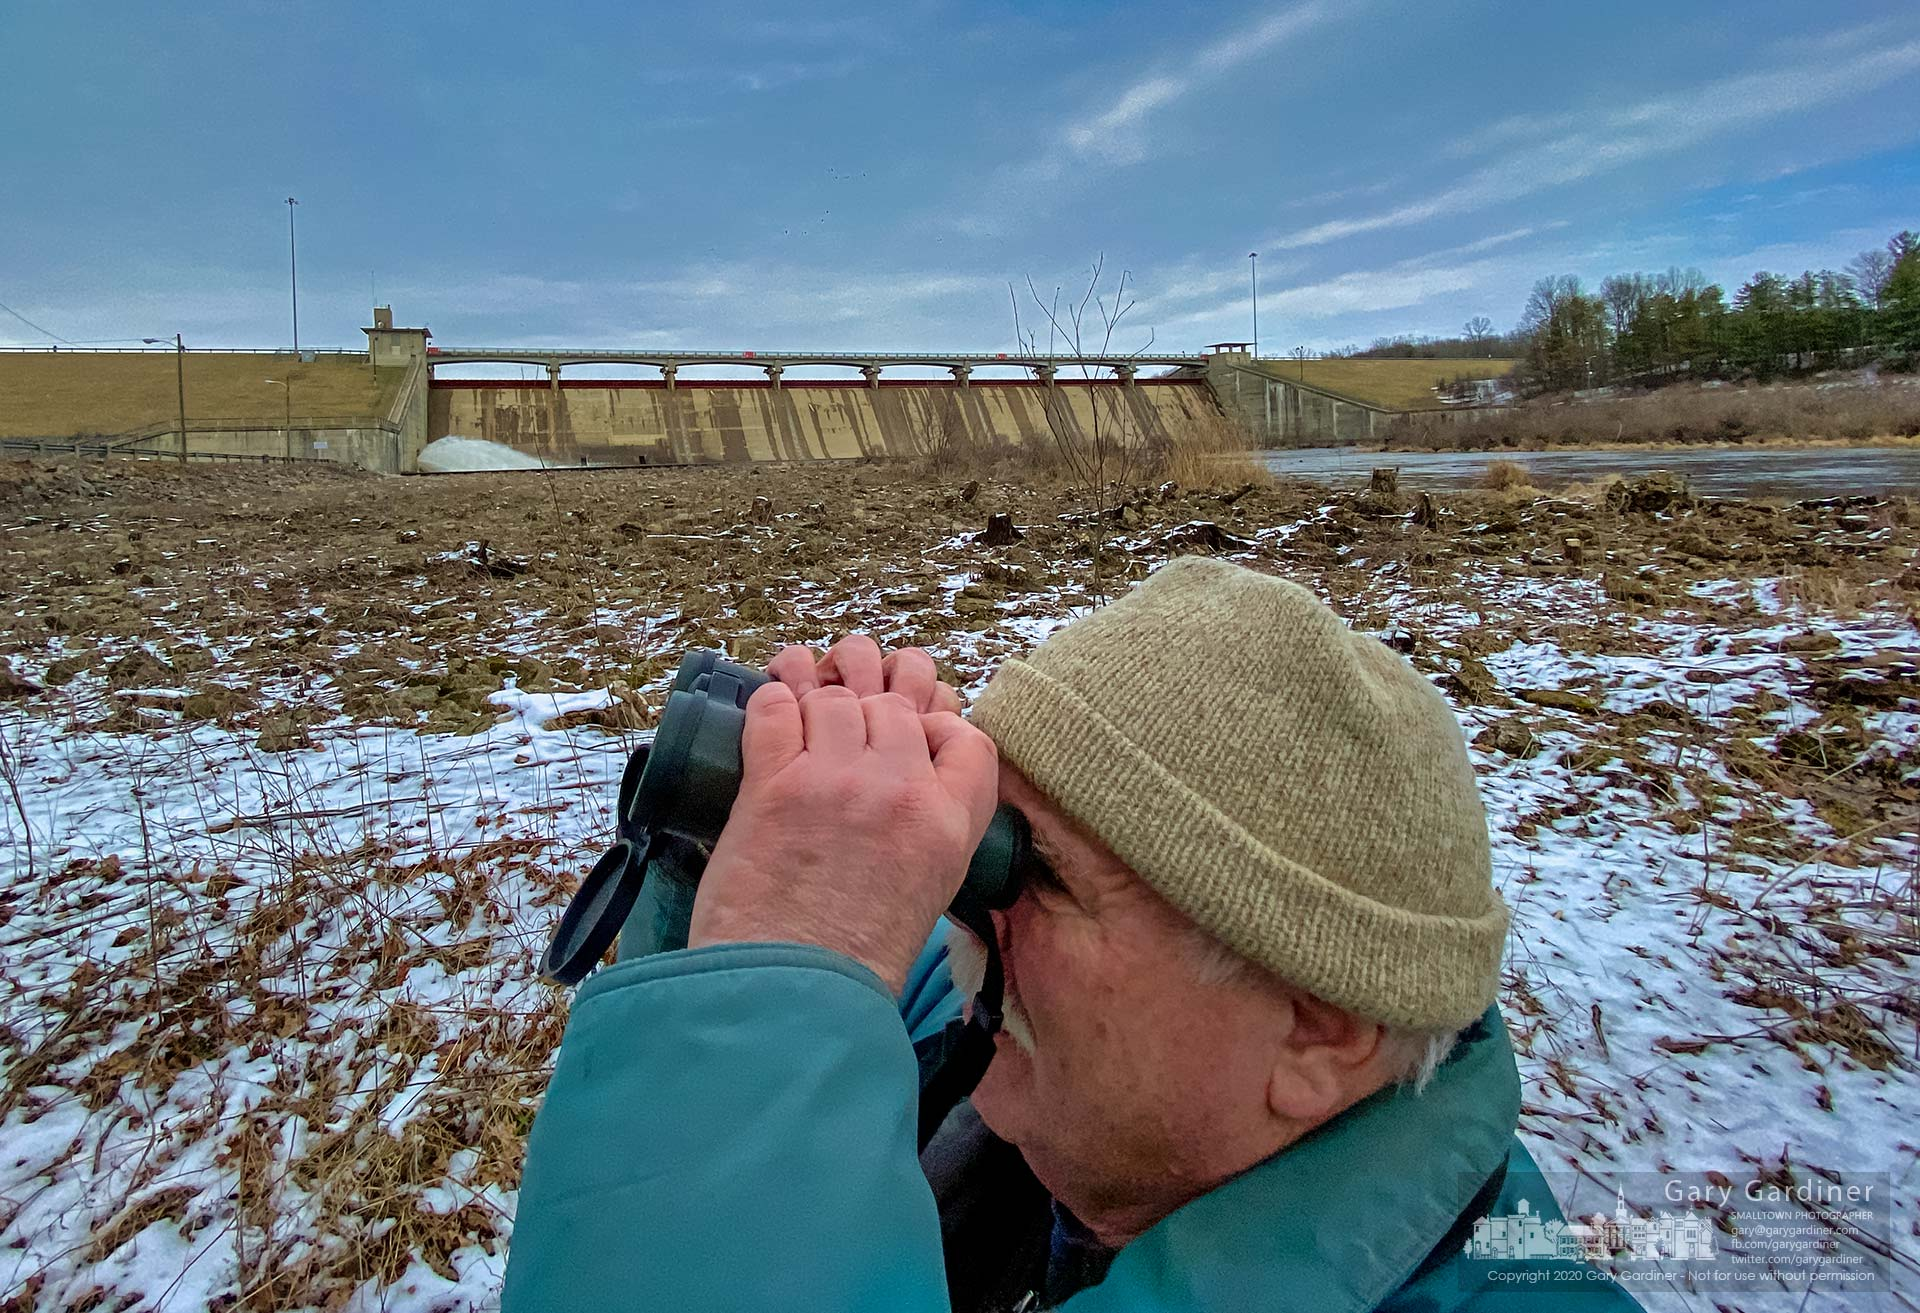 A birdwatcher visiting from Seattle successfully scans the trees below Hoover Dam for bluebirds, a rarity in Seattle. My Final Photo for Feb. 15, 2020.